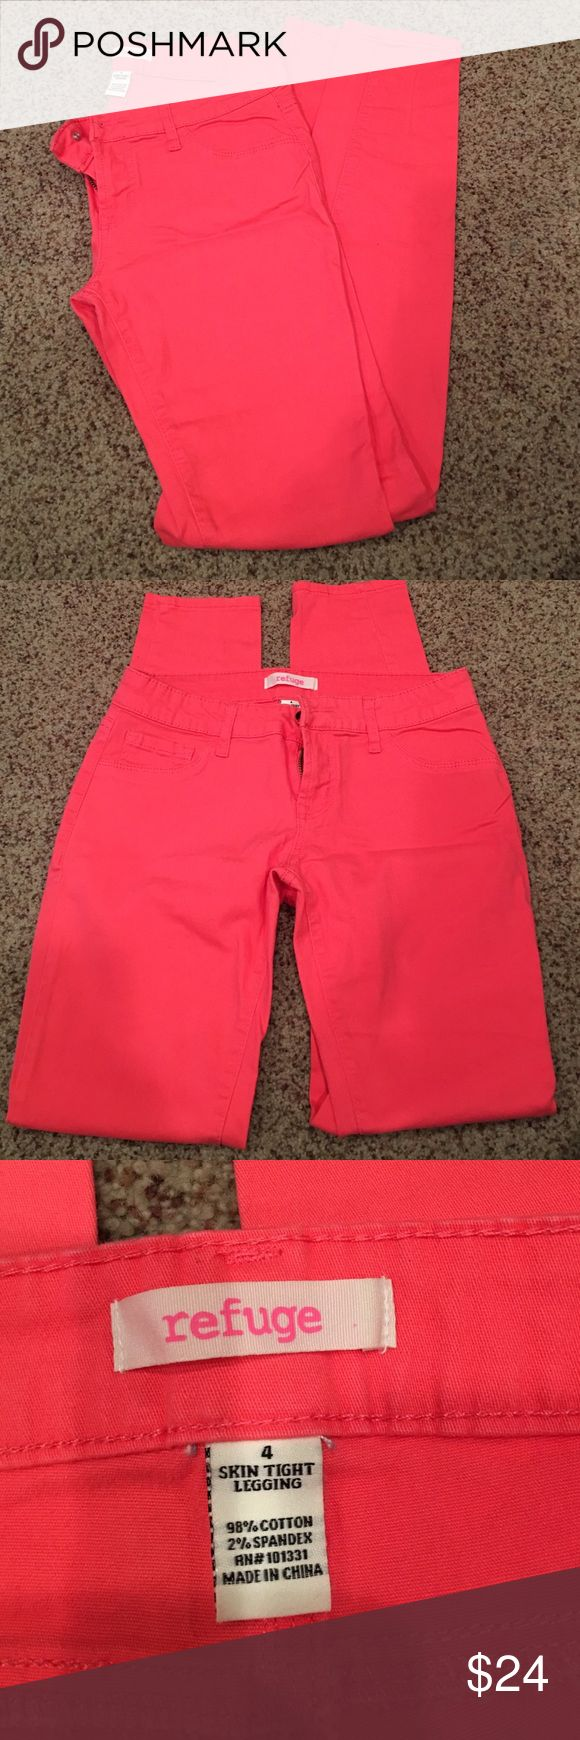 Charlotte Russe Refuge Skinny Jean Charlotte Russe Refuge Skinny Jean. Skin tight legging. Color pink. Size 4. Only worn once, great condition and super comfortable. Charlotte Russe Jeans Skinny